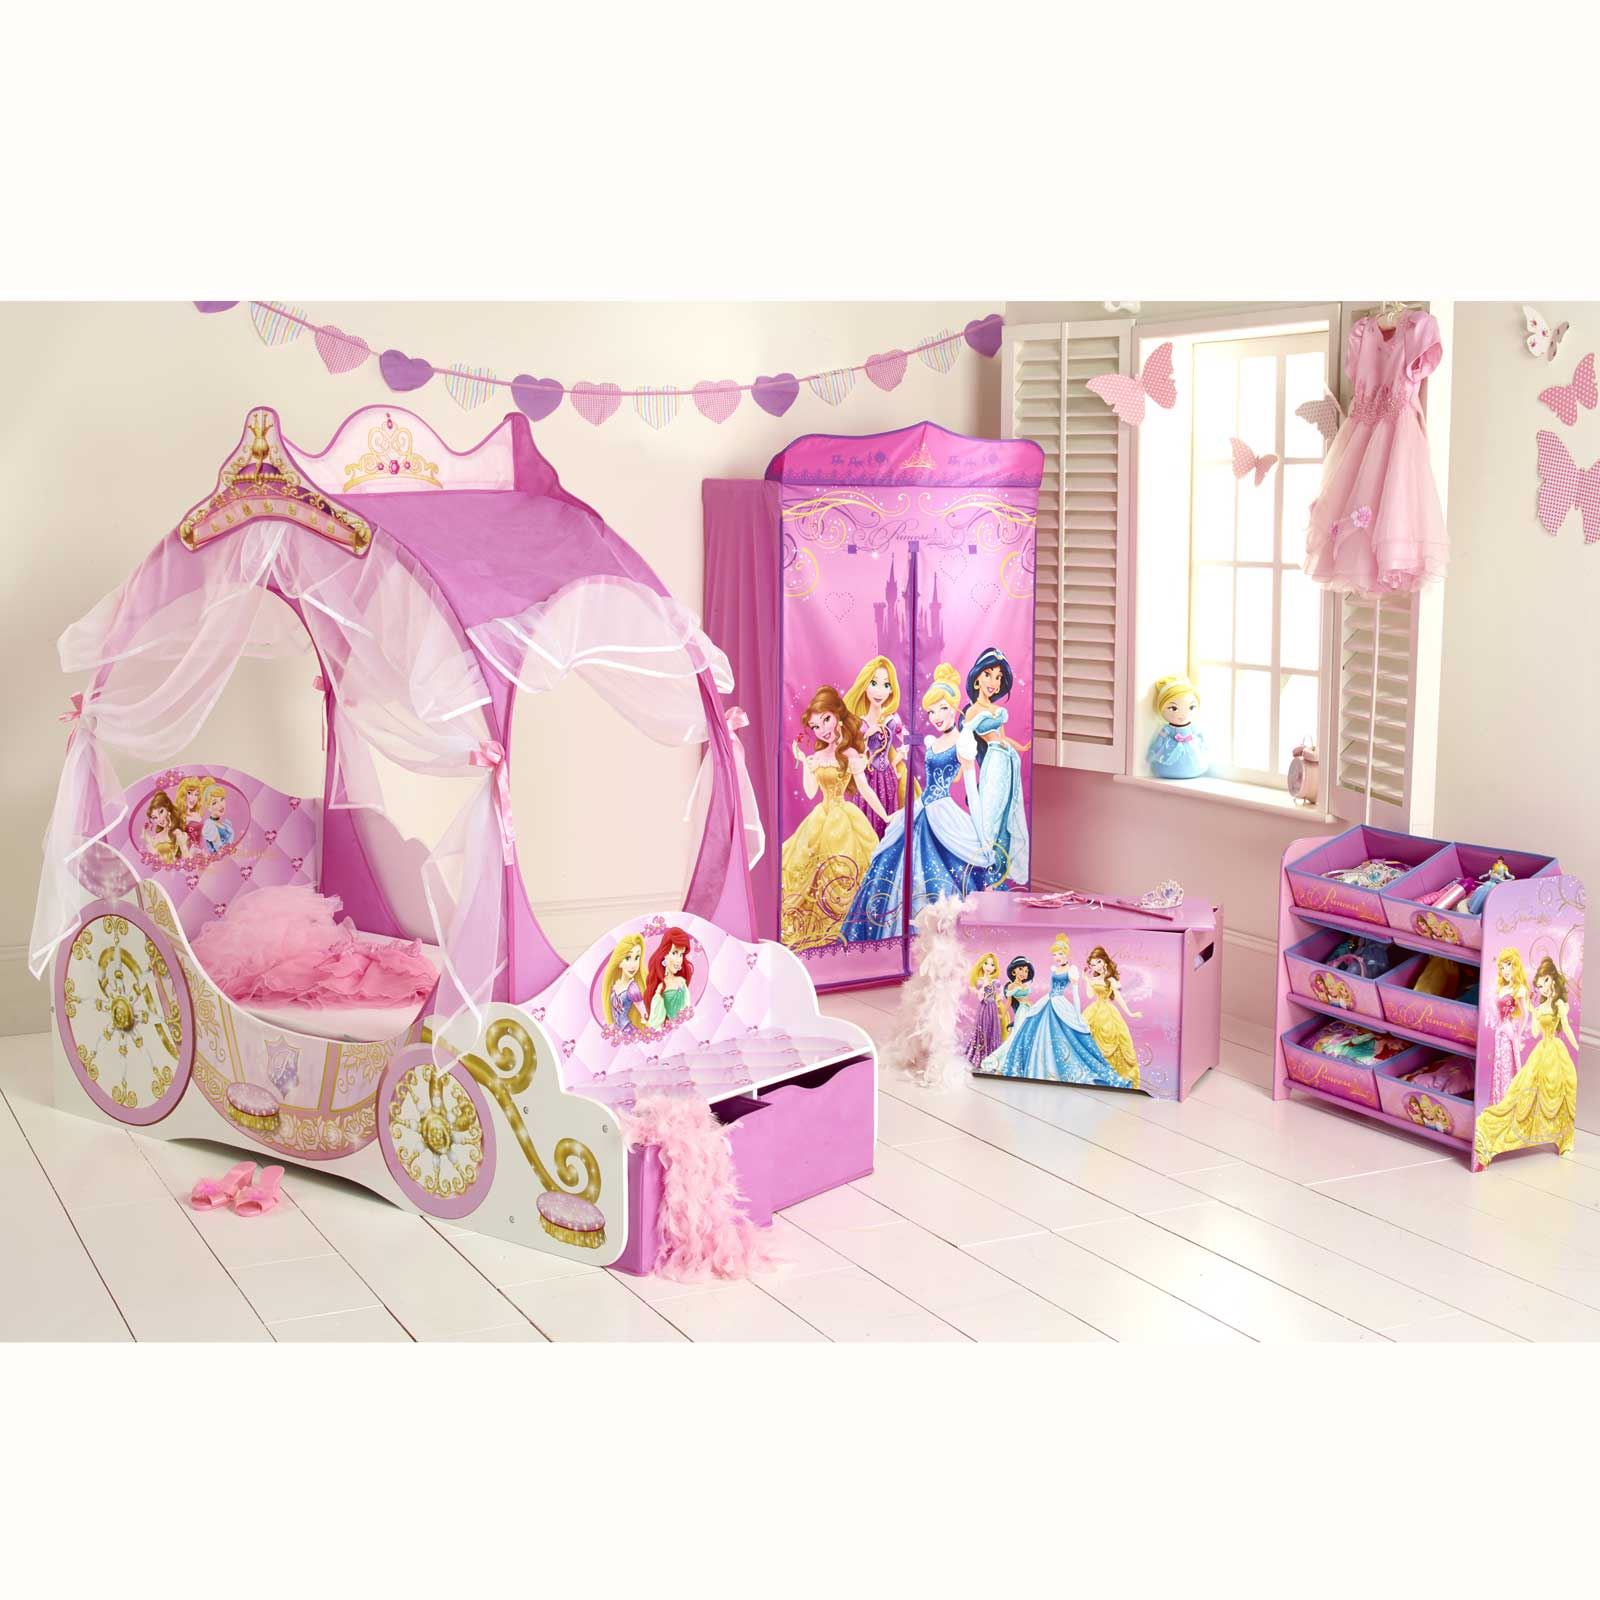 disney kleinkind bett prinzessin kutsche neue matratze. Black Bedroom Furniture Sets. Home Design Ideas